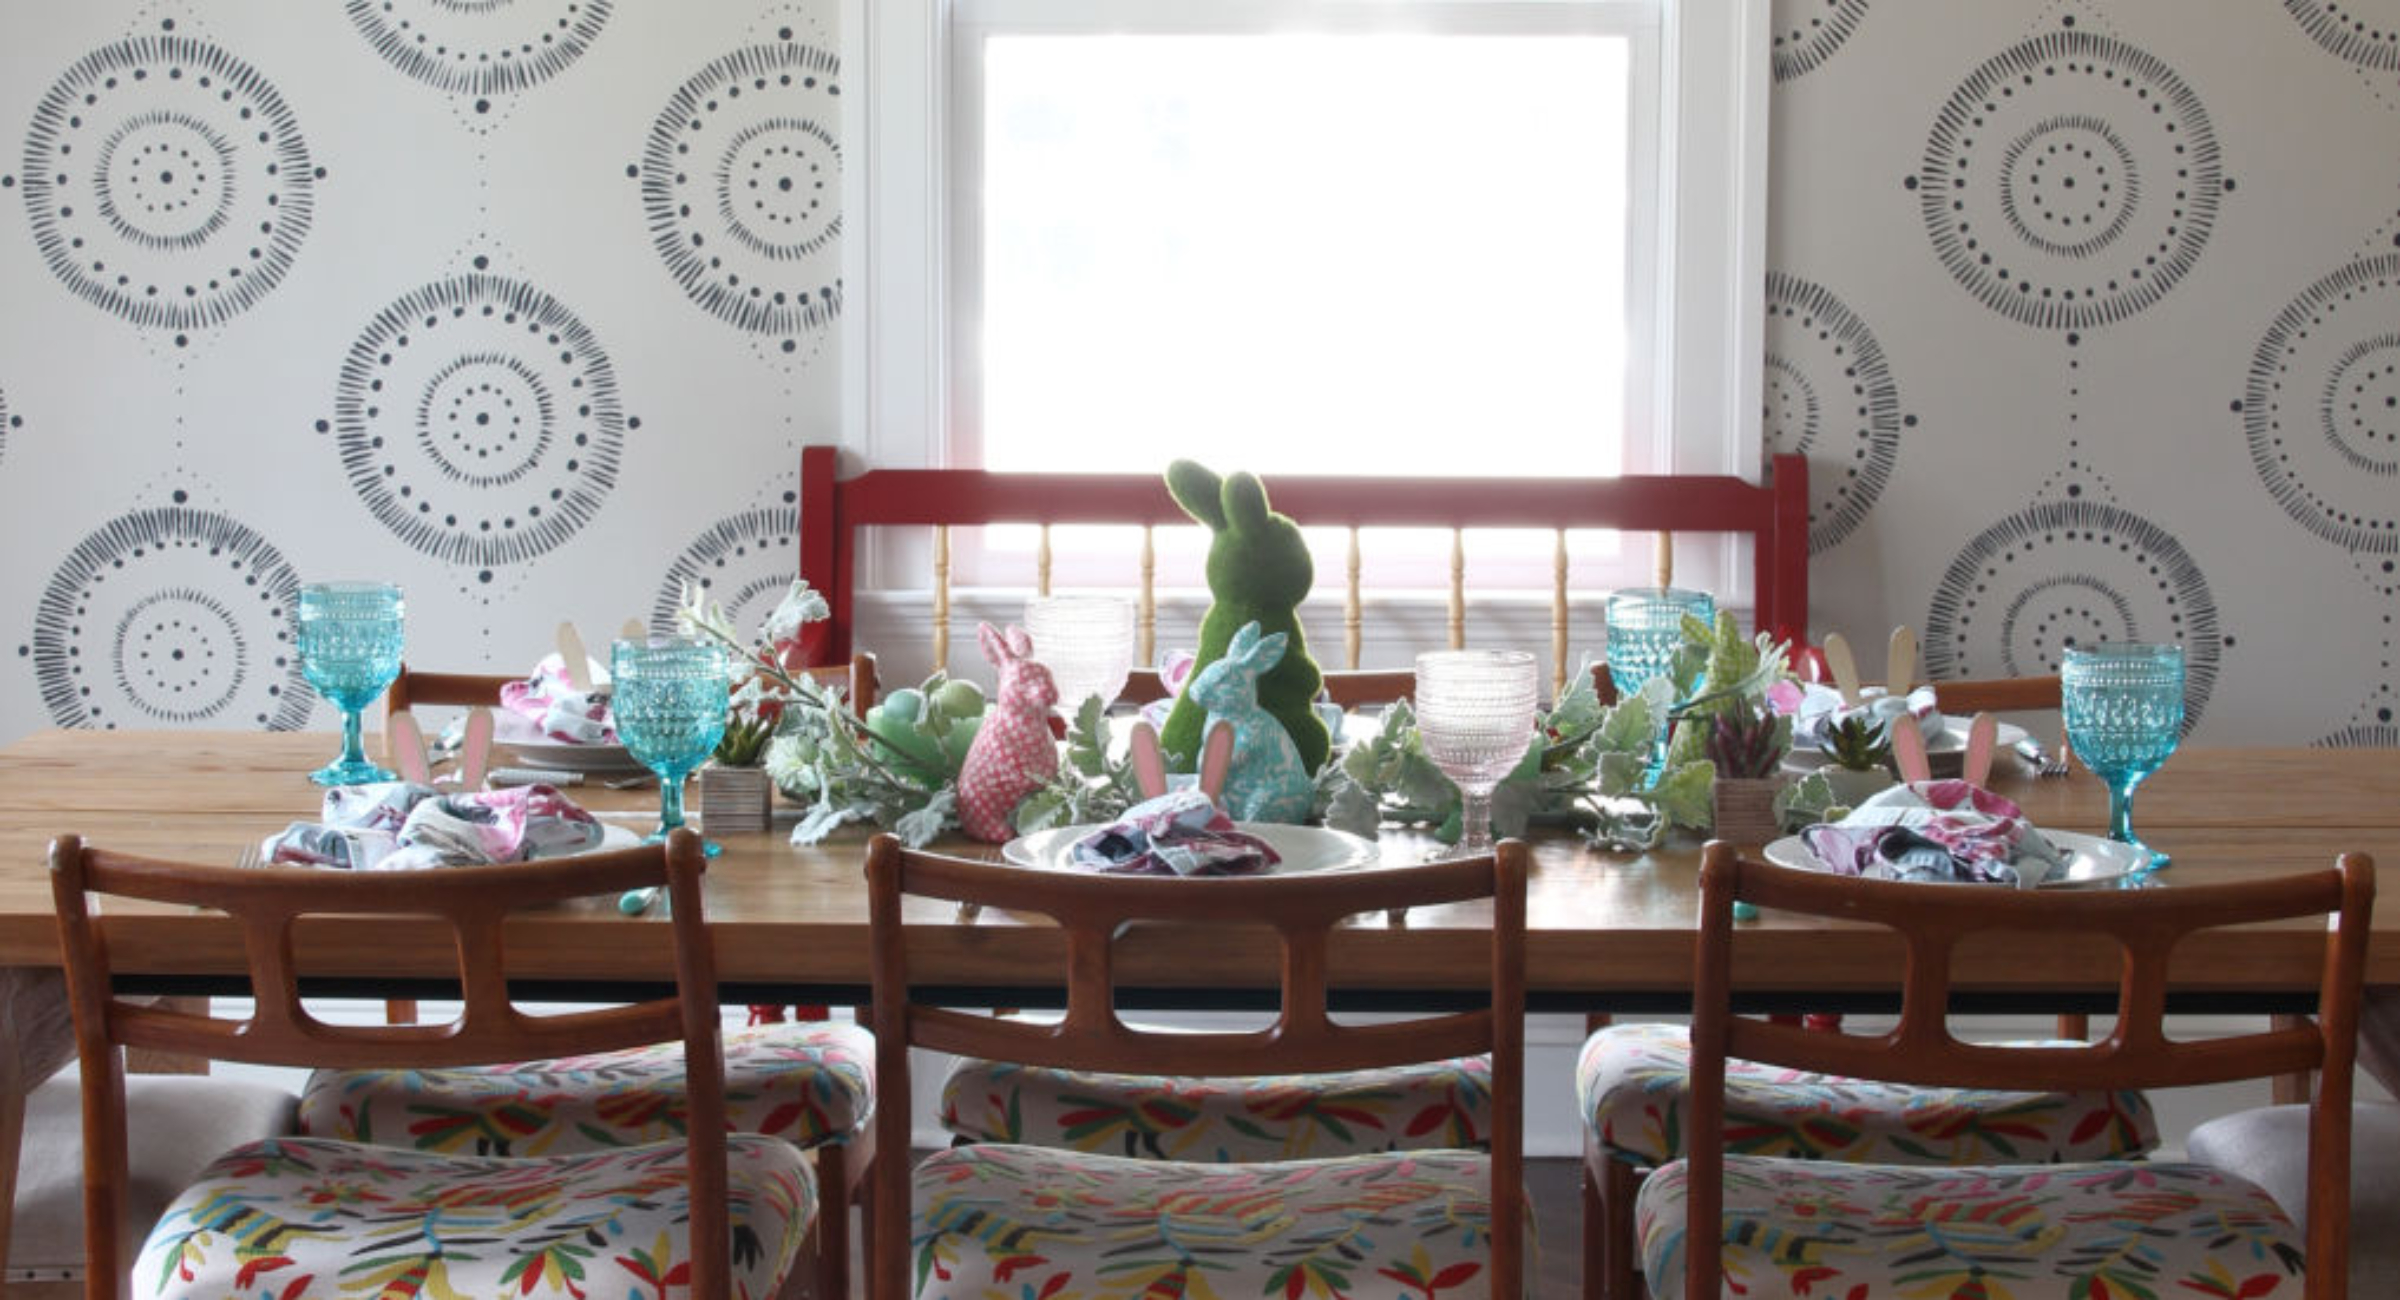 wall-mural-dining-room-danish-chairs-otomi